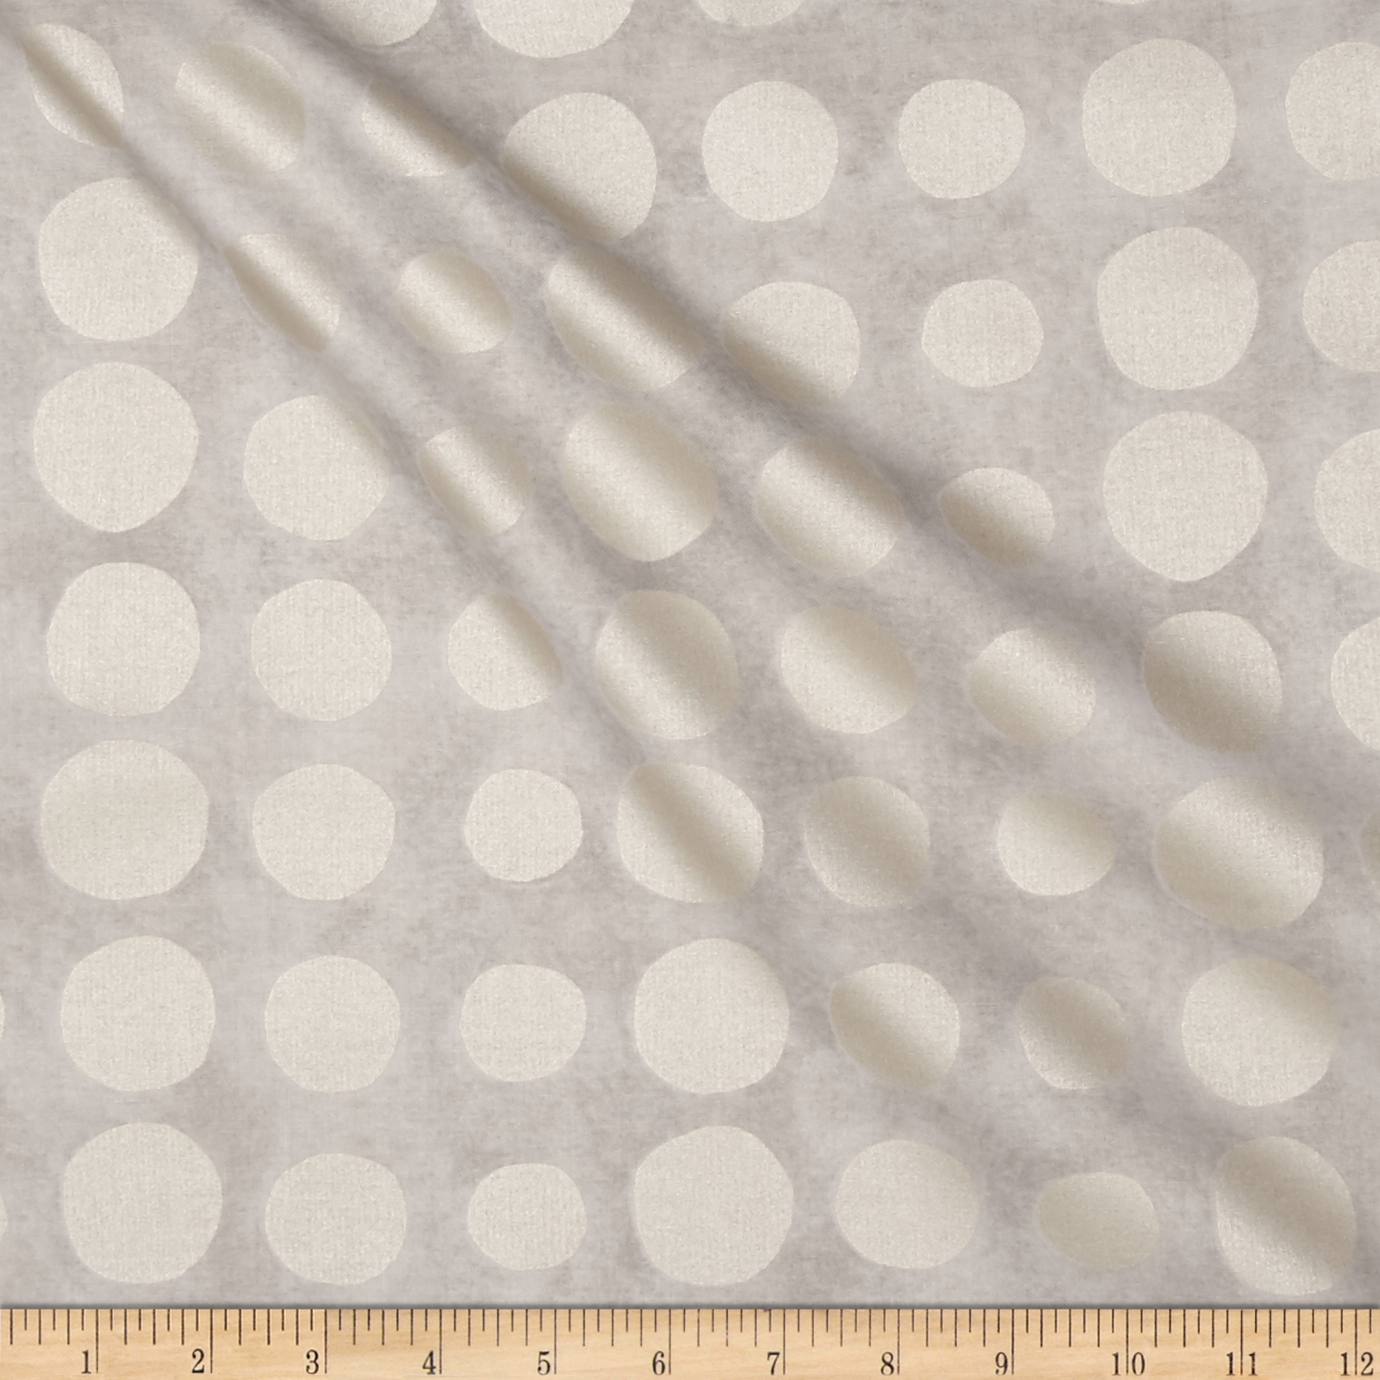 Pearlized Dot Light Grey Fabric by Stardom Specialty in USA